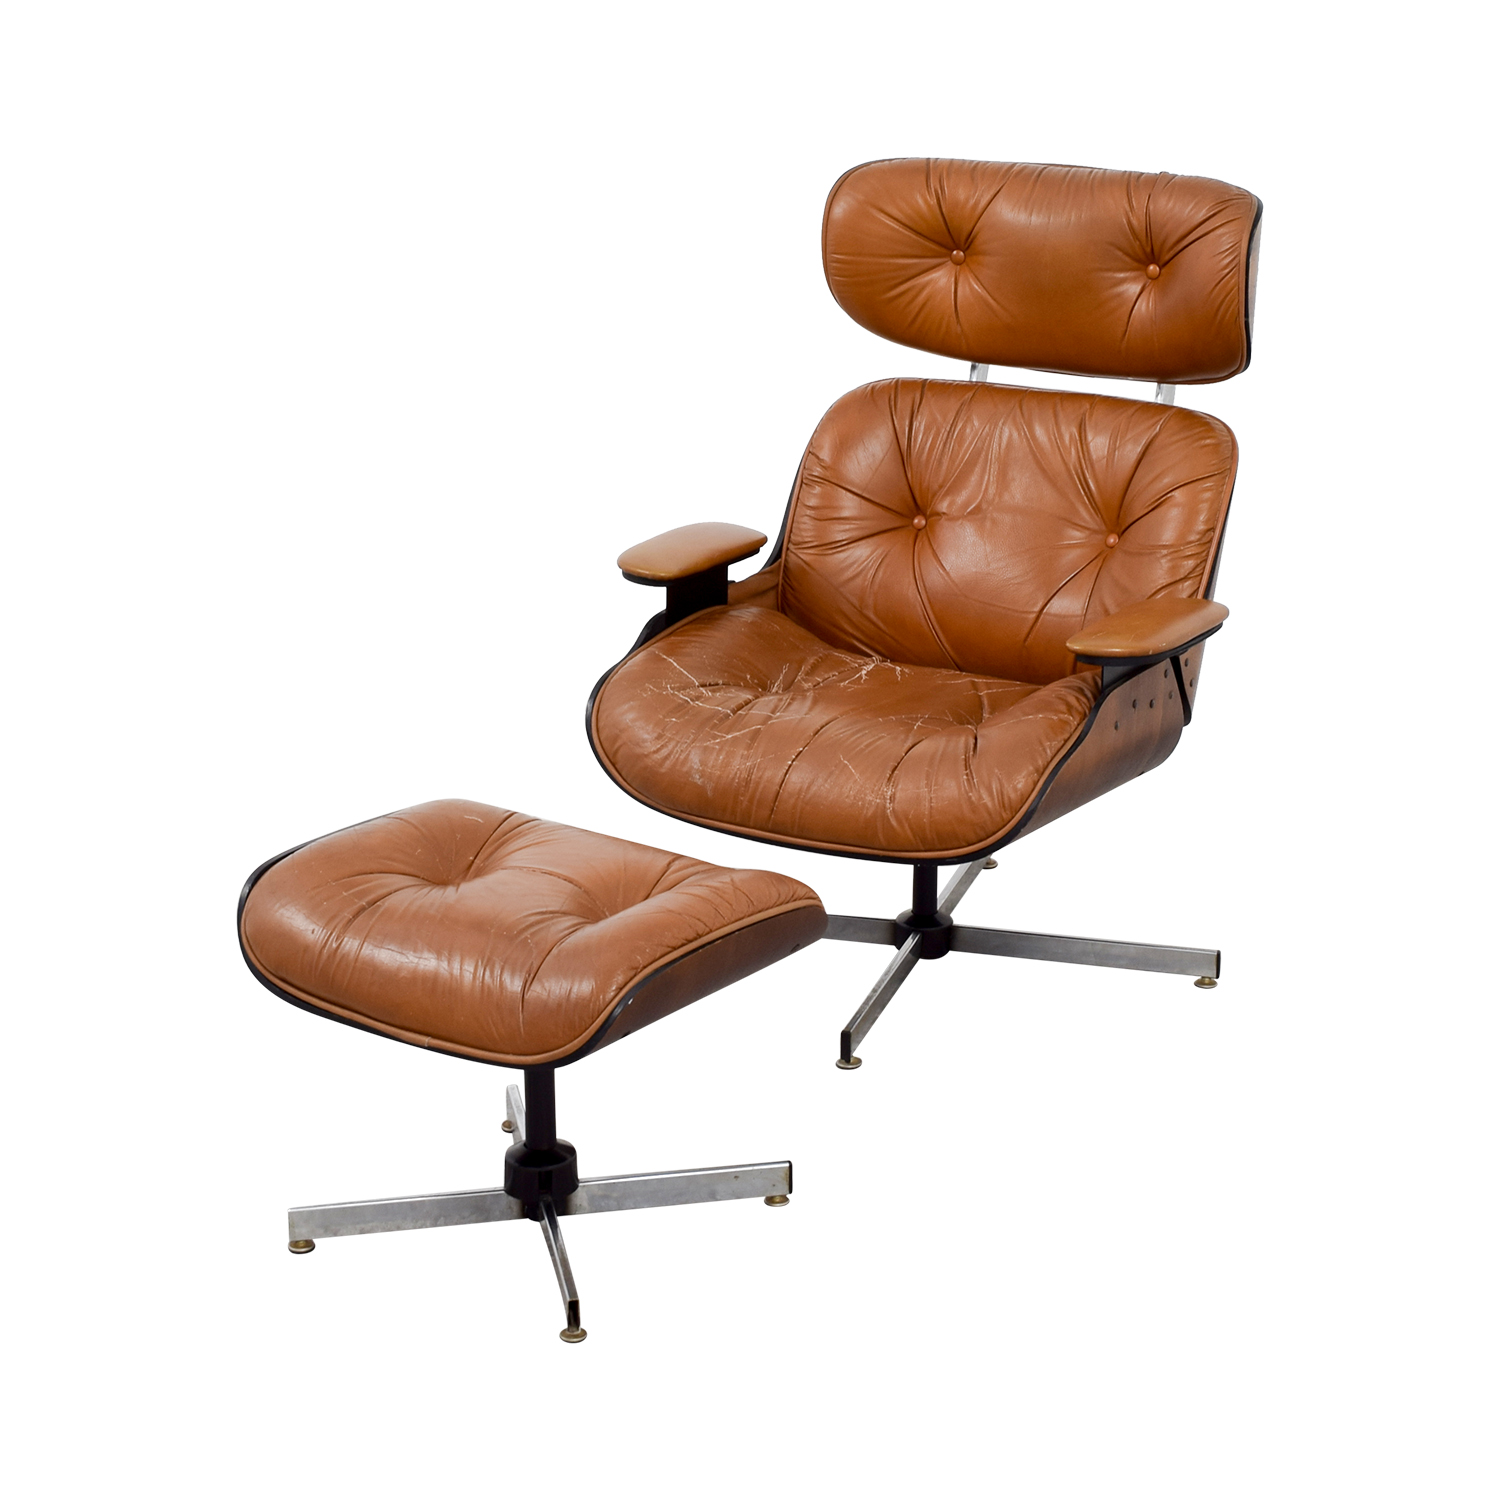 69 off eames replica leather chair with ottoman chairs for Leather eames dining chair